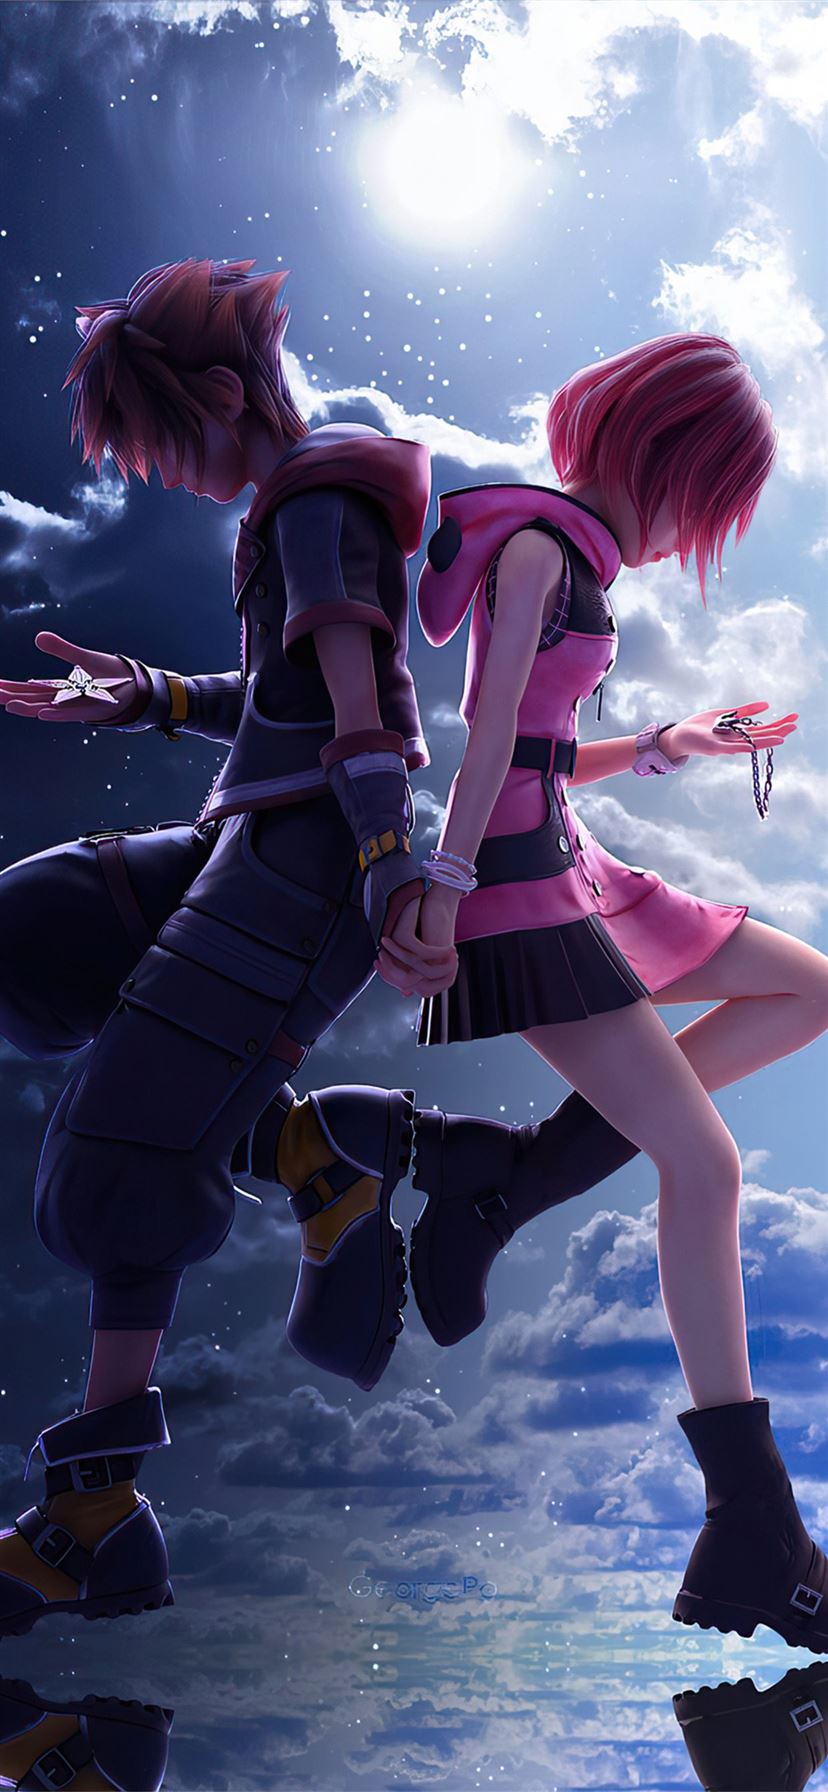 Kingdom Hearts 3 Sora And Kaira 4k Iphone 11 Wallpapers Free Download